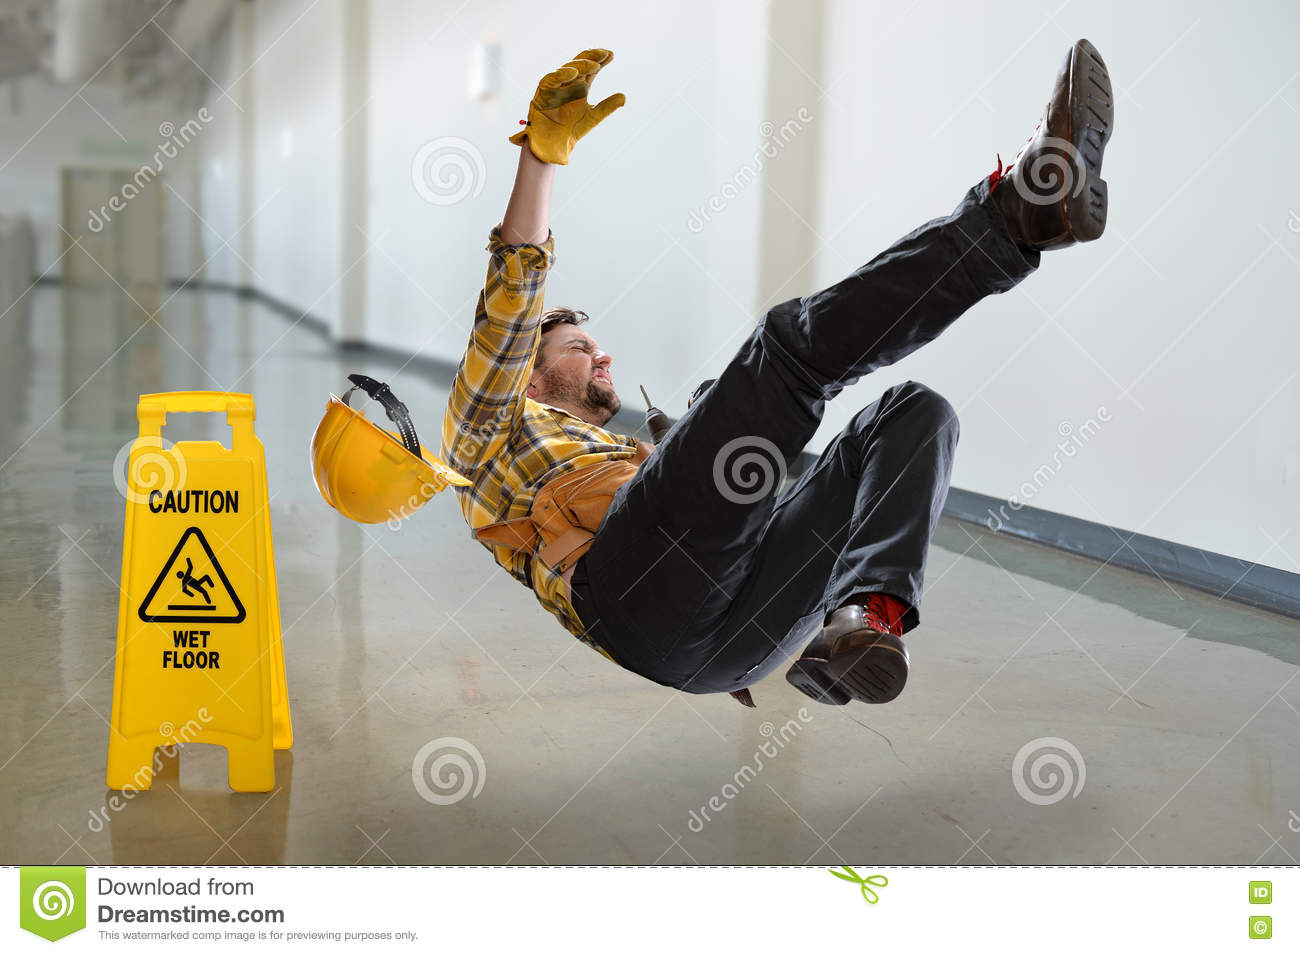 Worker Falling On Wet Floor Stock Photo Image Of Caution